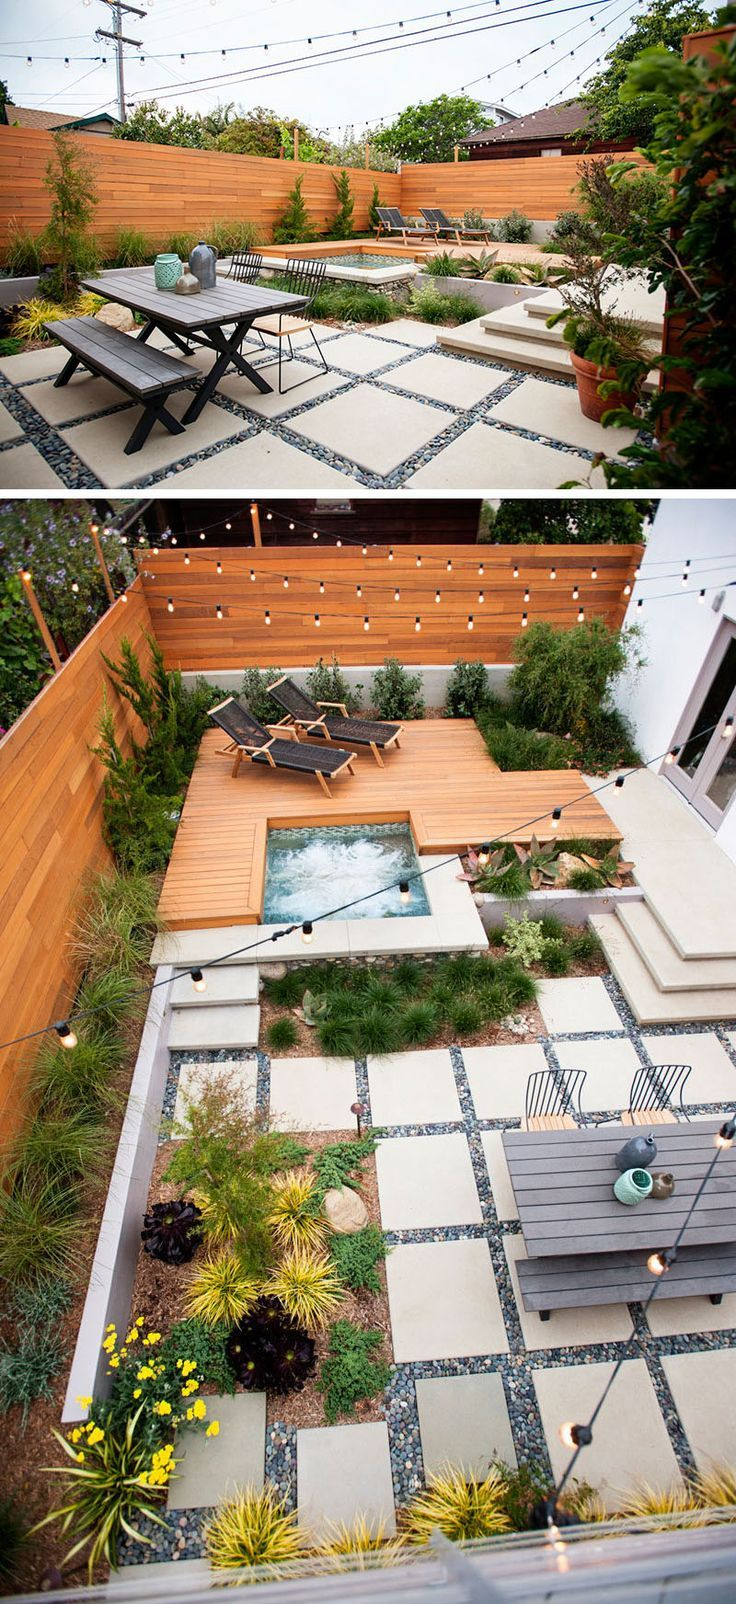 Landscaping Design Ideas 11 Backyards Designed For Entertaining within 14 Clever Initiatives of How to Make Backyard Landscaping Designs